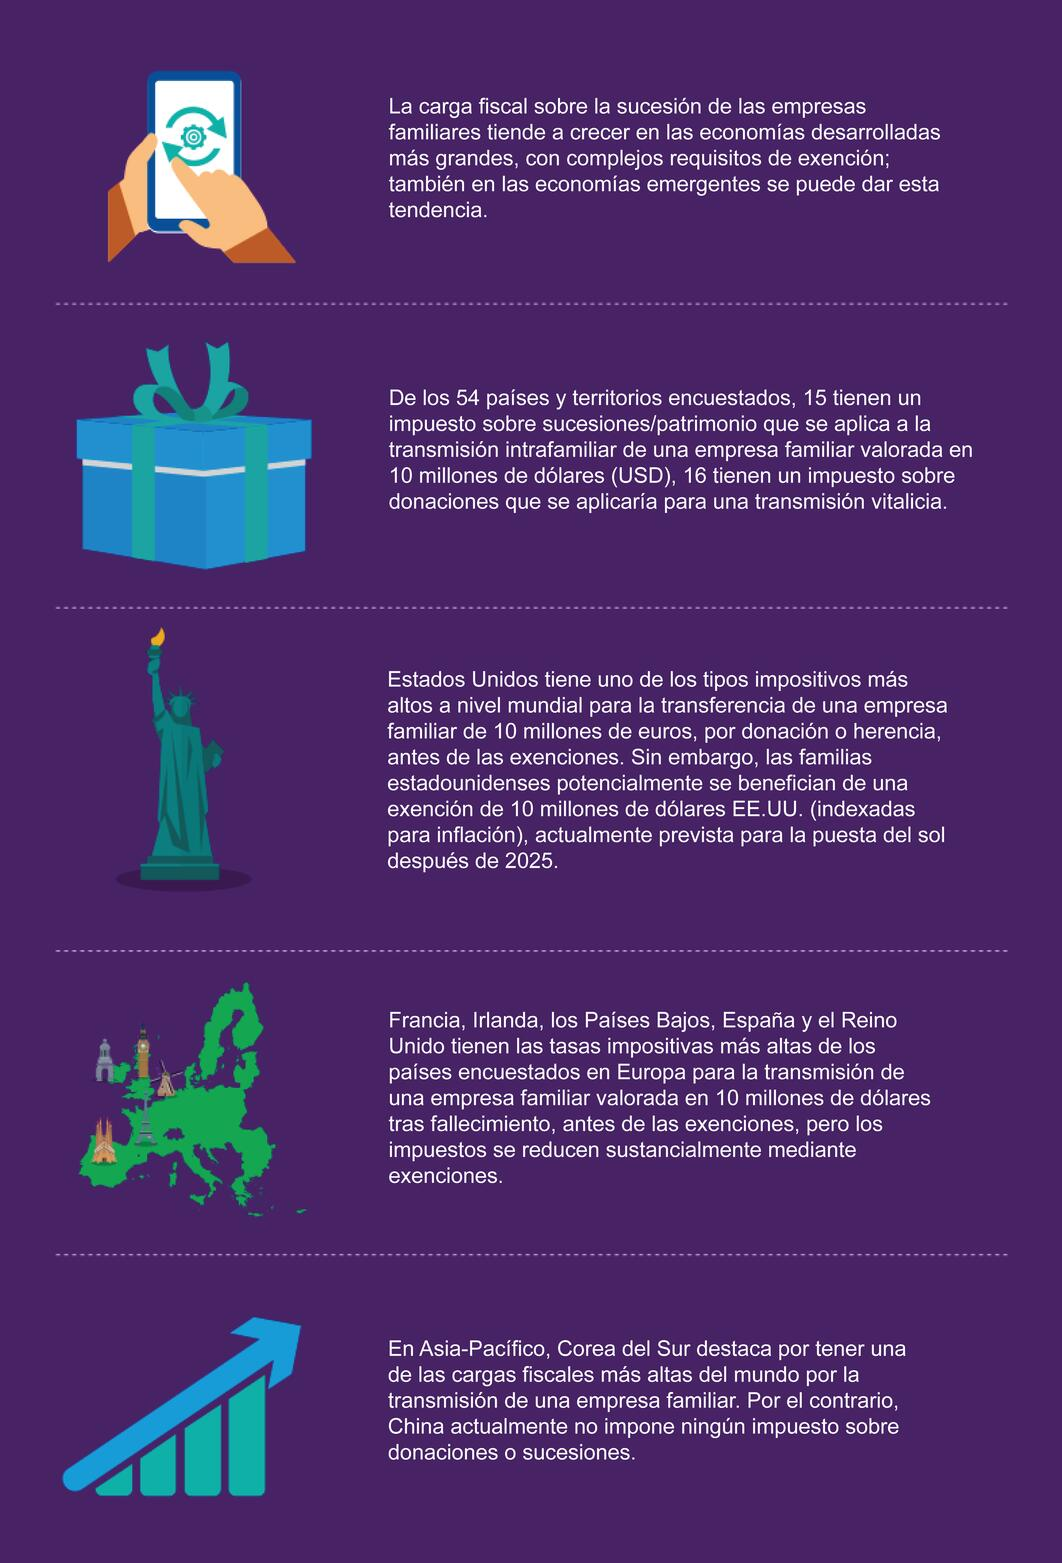 Global family business tax monitor - Infographic